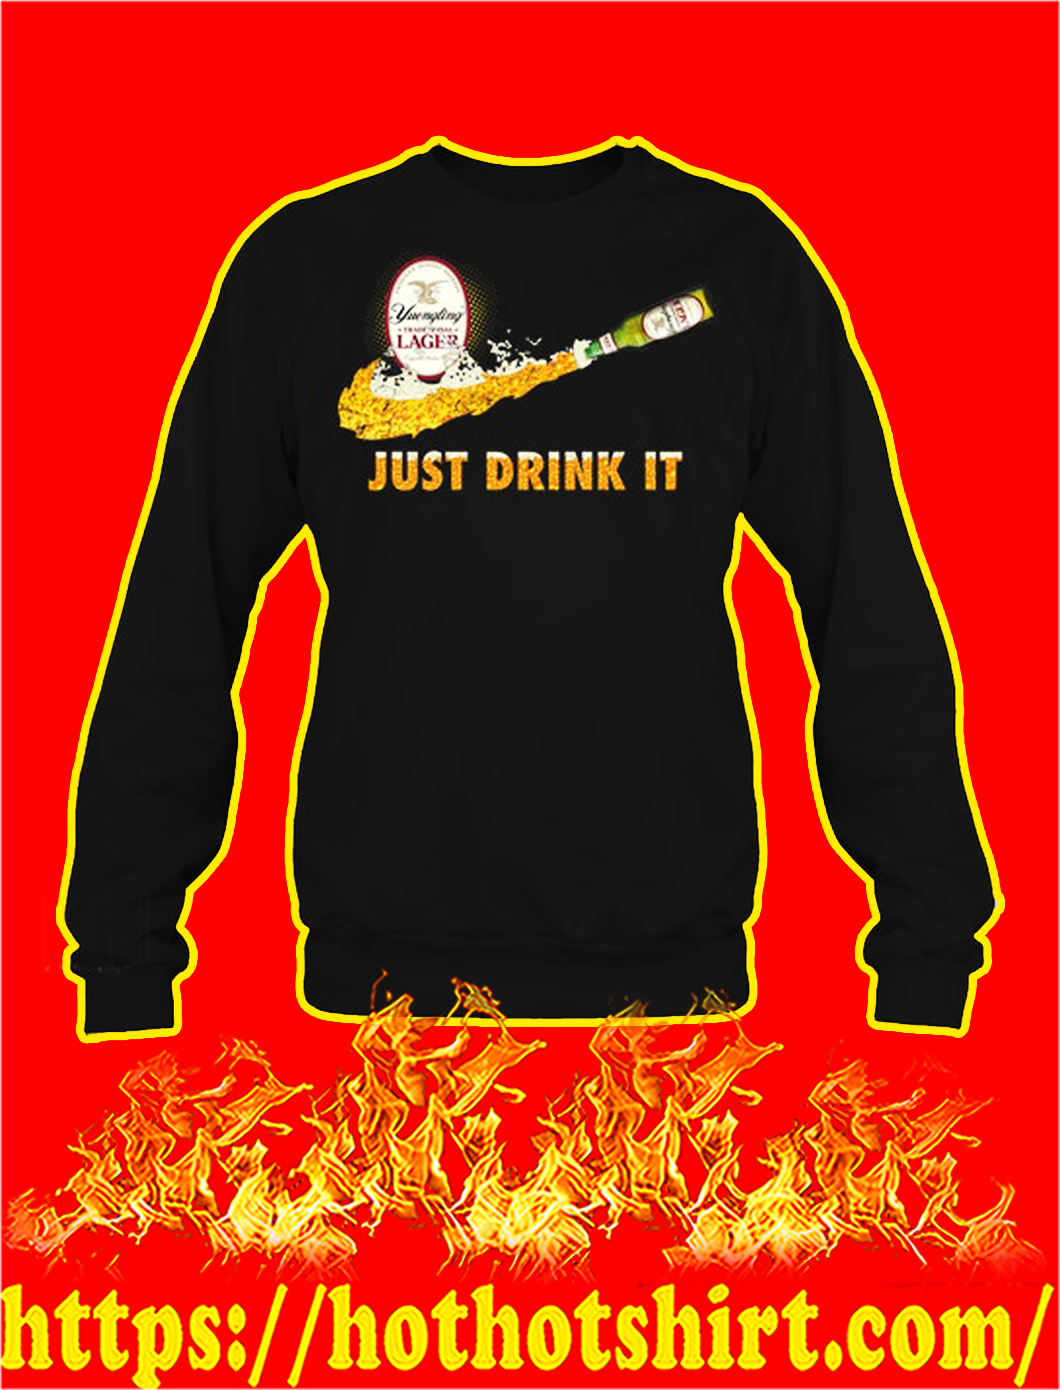 Yuengling traditional lager just drink it sweatshirt